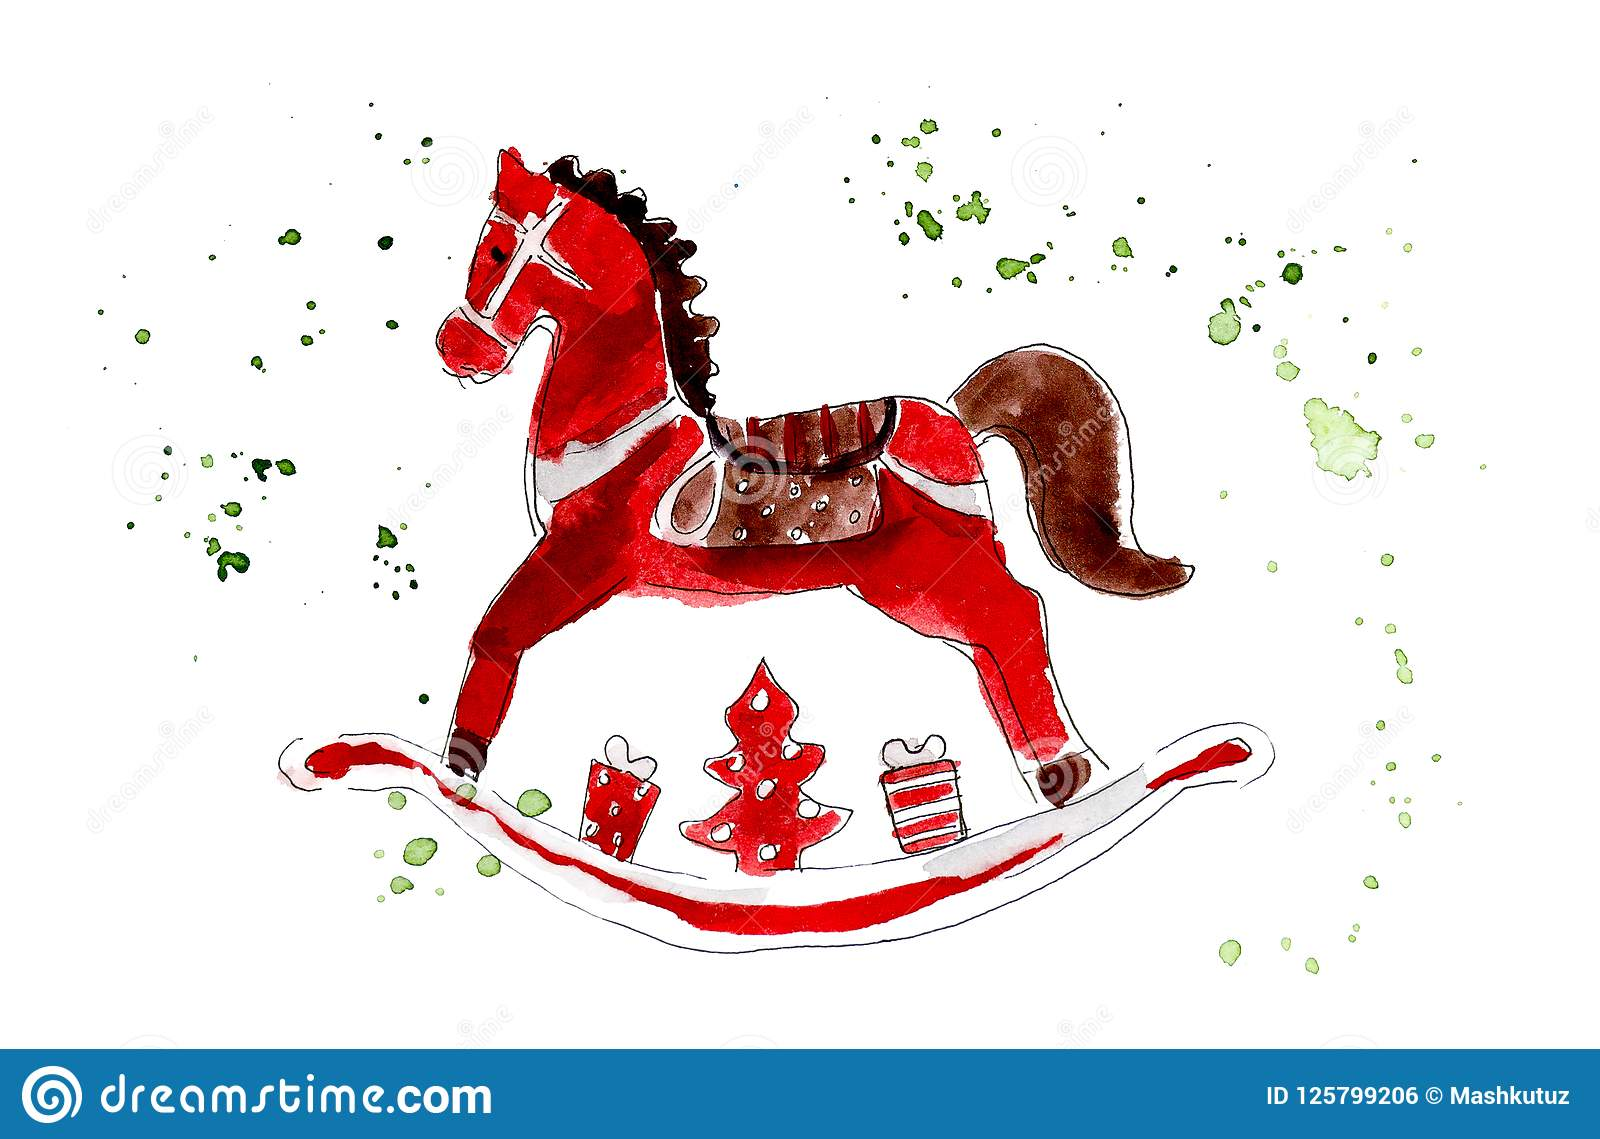 Christmas Horse Drawing.Christmas Toys Wooden Red Horse Watercolor Hand Drawing